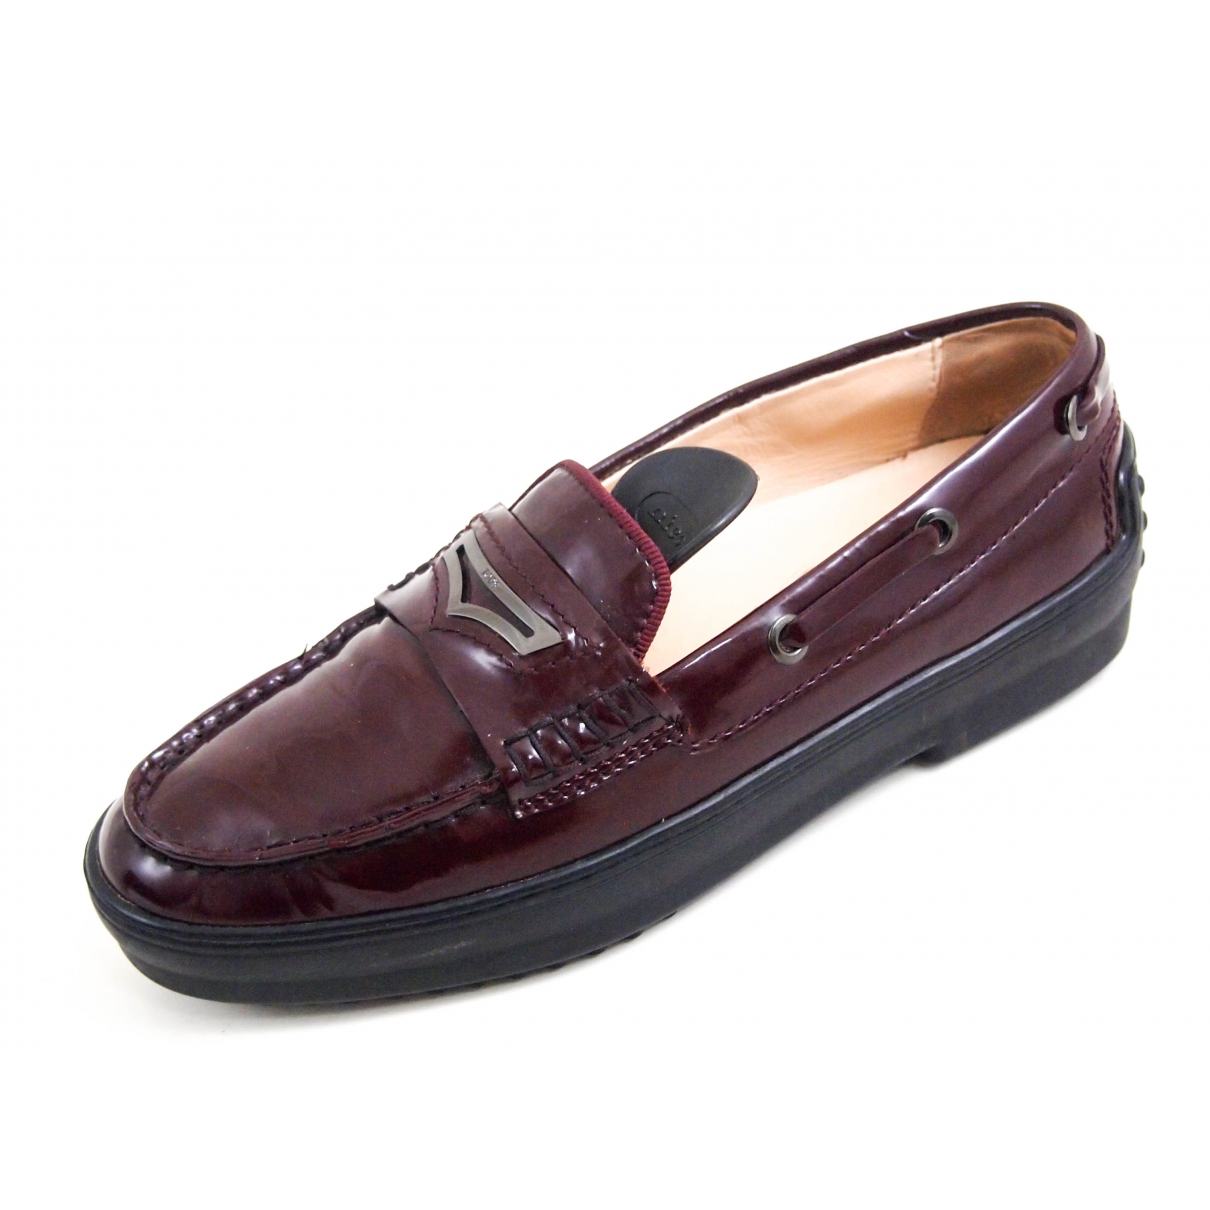 Tod's N Burgundy Patent leather Flats for Women 36 EU